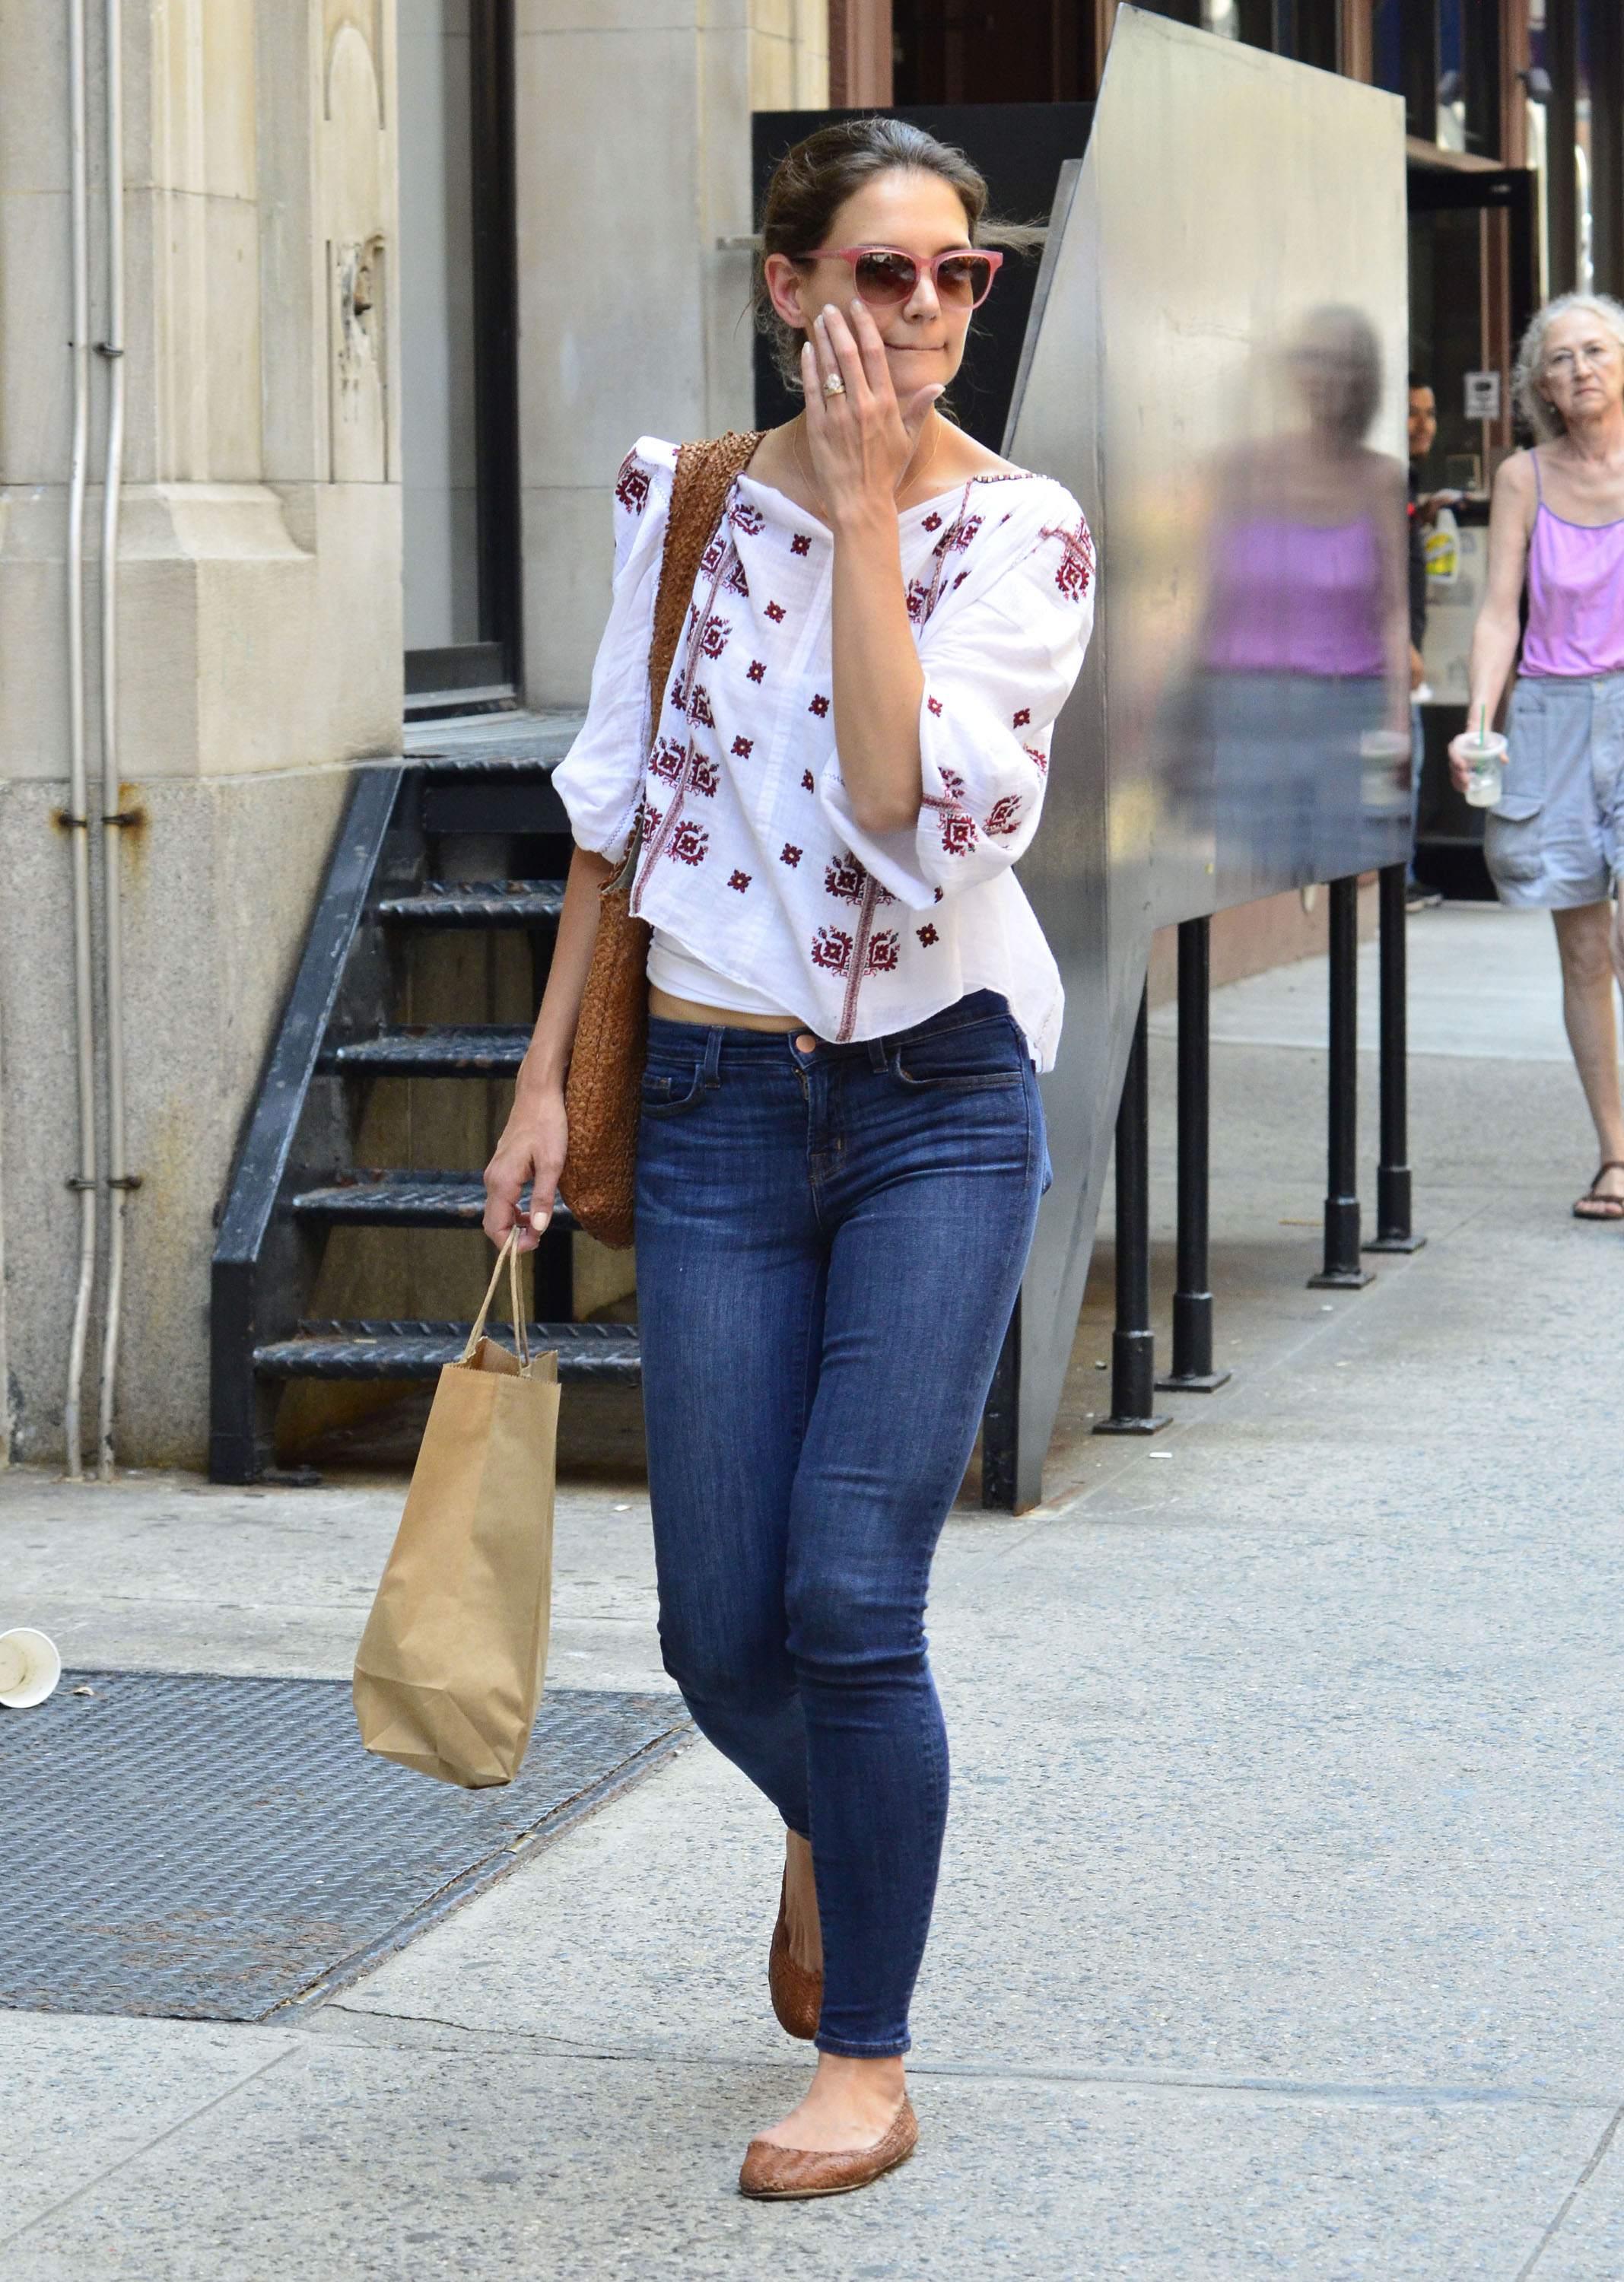 Katie Holmes with a weight of 54.4 kg and a feet size of 11 in favorite outfit & clothing style